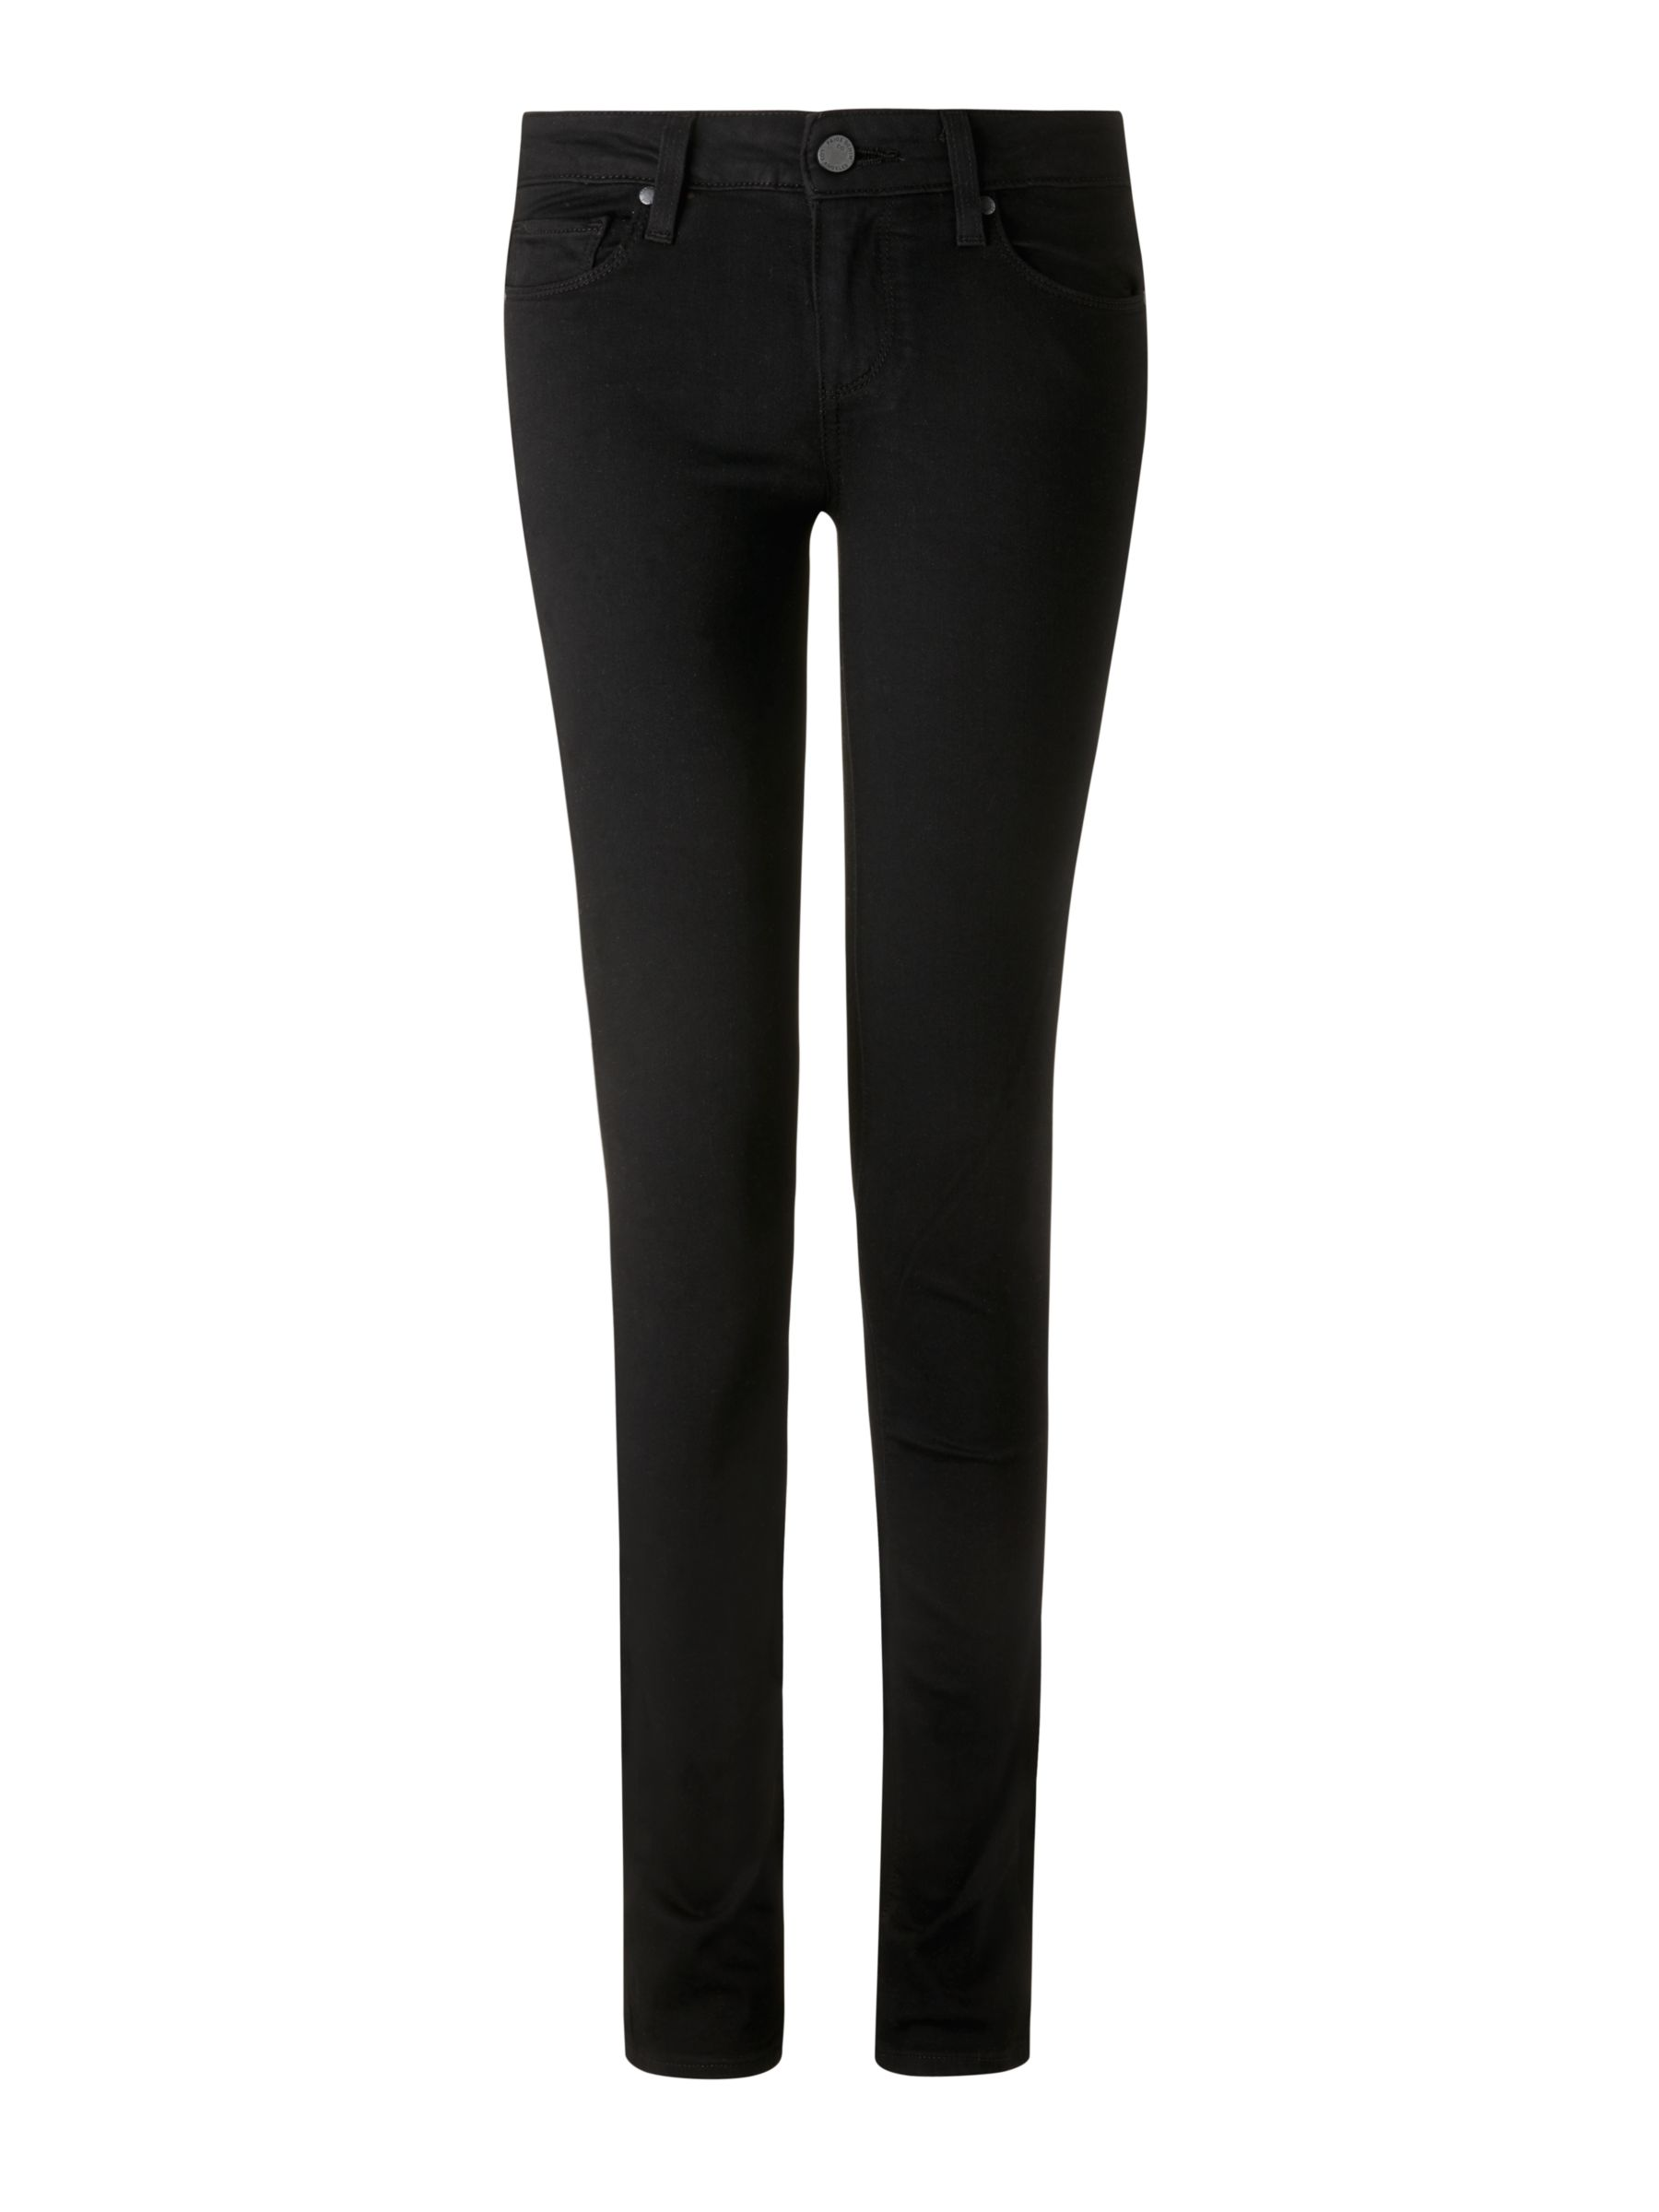 Buy Paige Skyline Mid Rise Skinny Jeans, Black Shadow, 24 Online at johnlewis.com